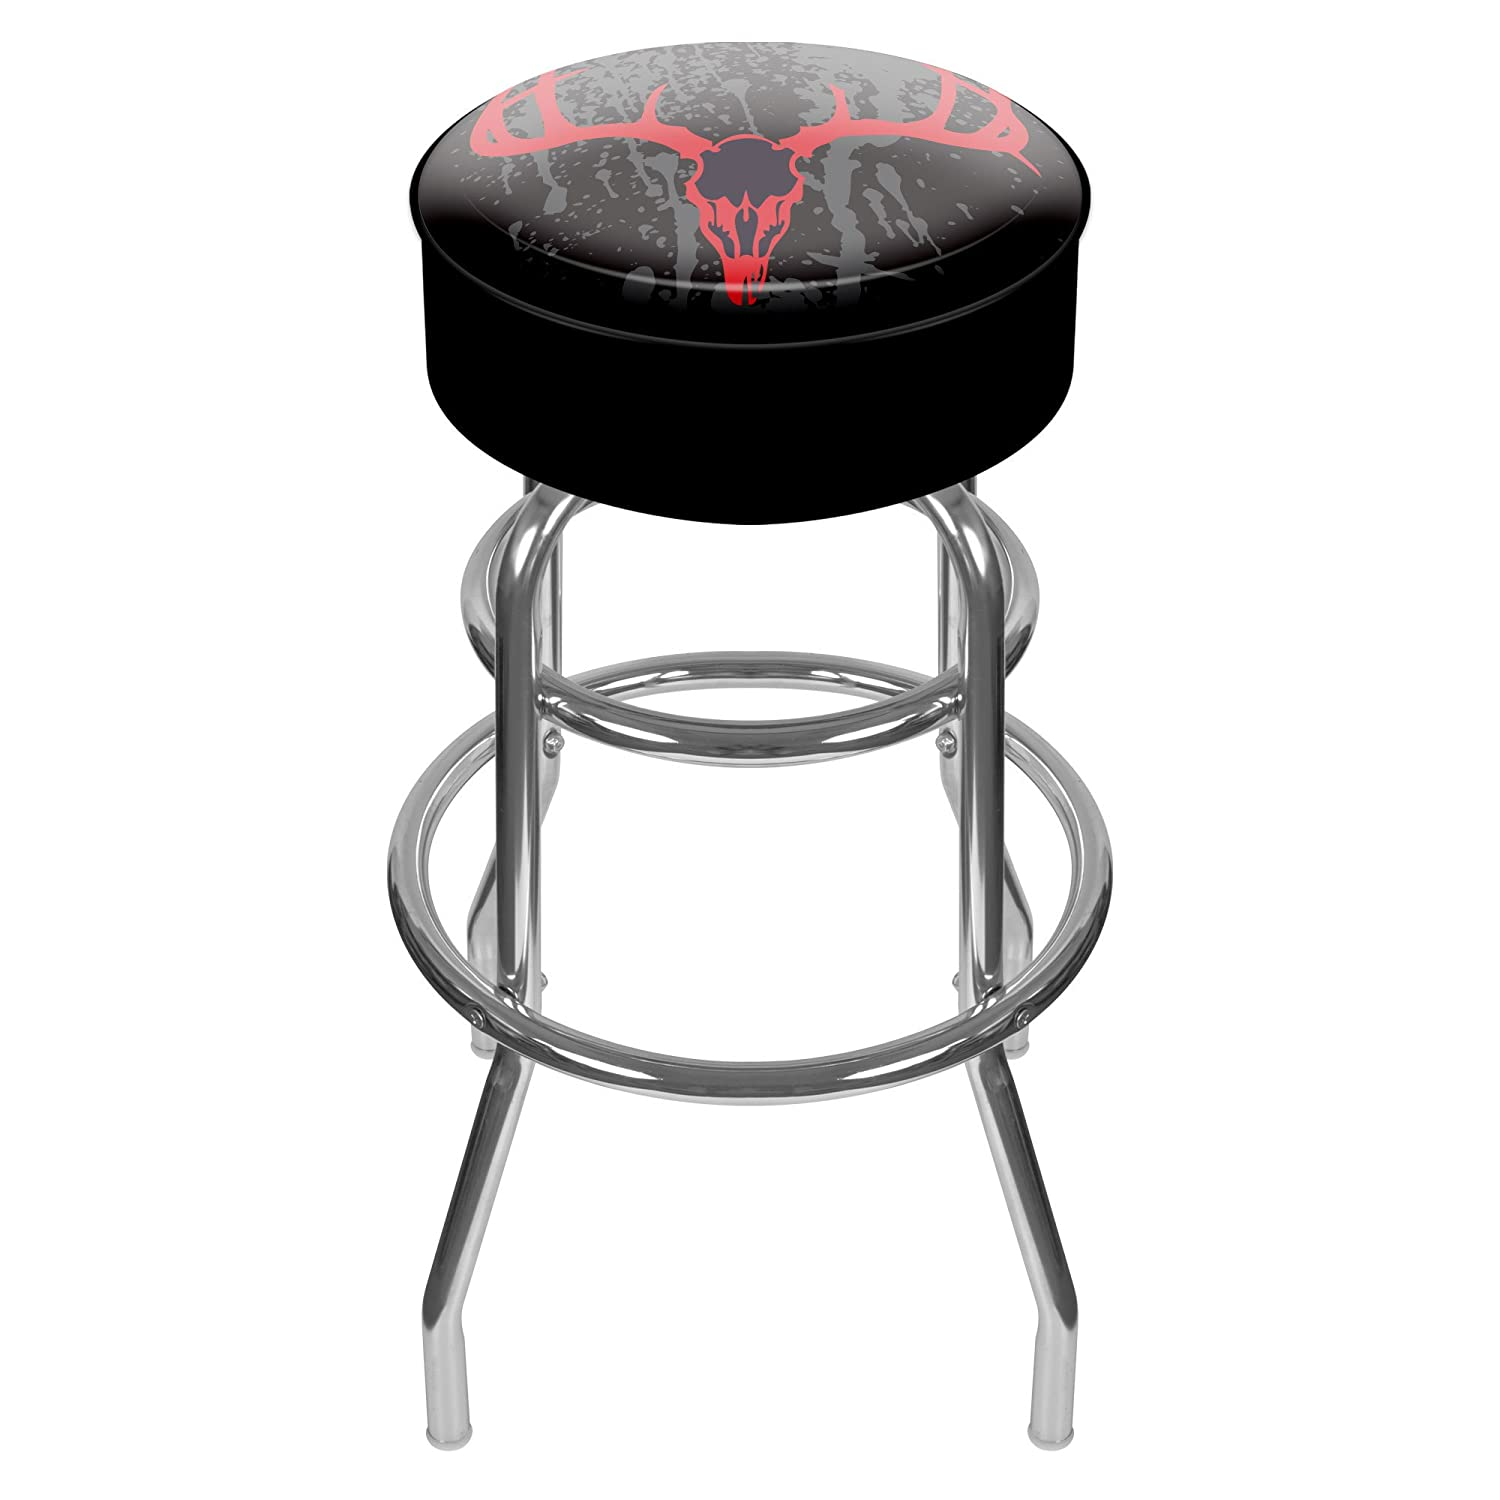 Hunt Skull Padded Swivel Bar Stool